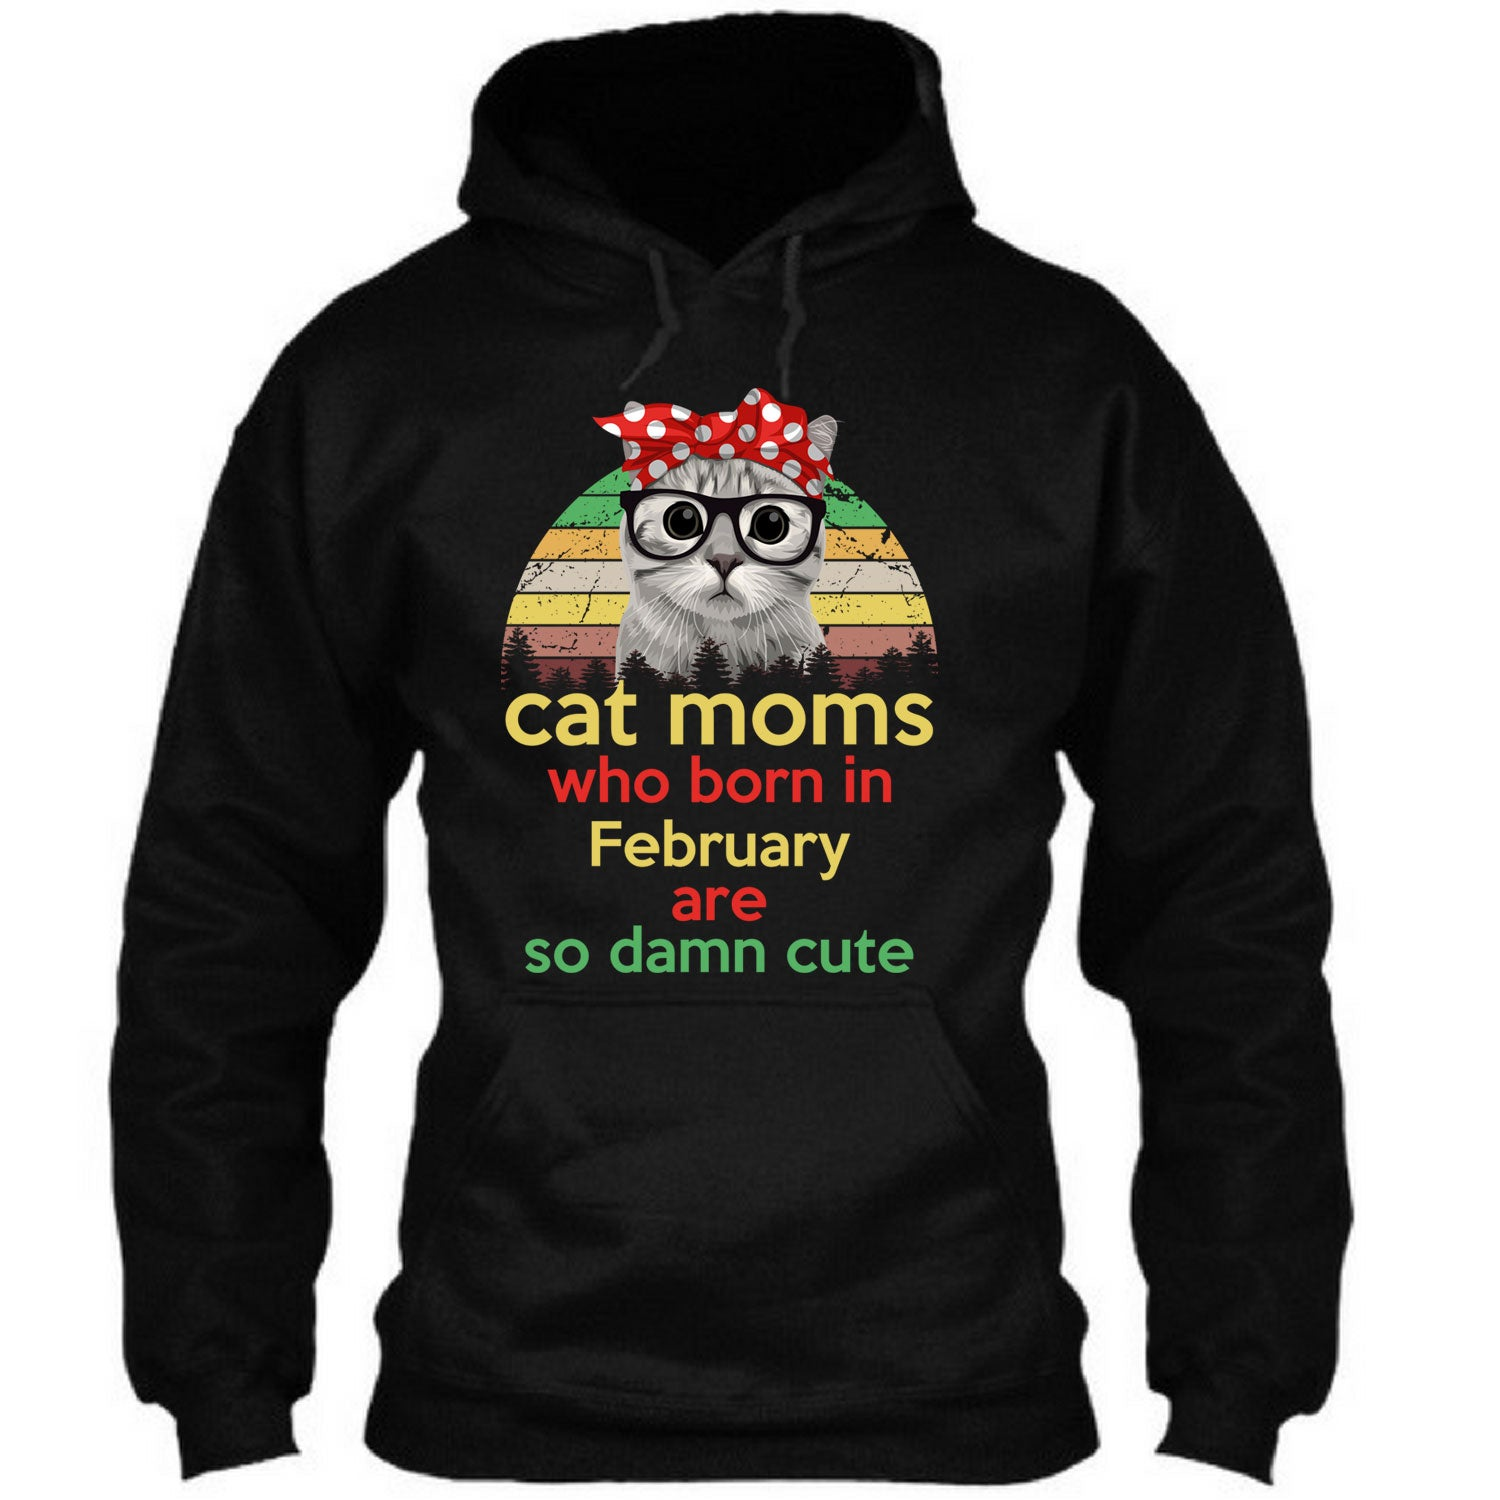 Cat moms who born in February